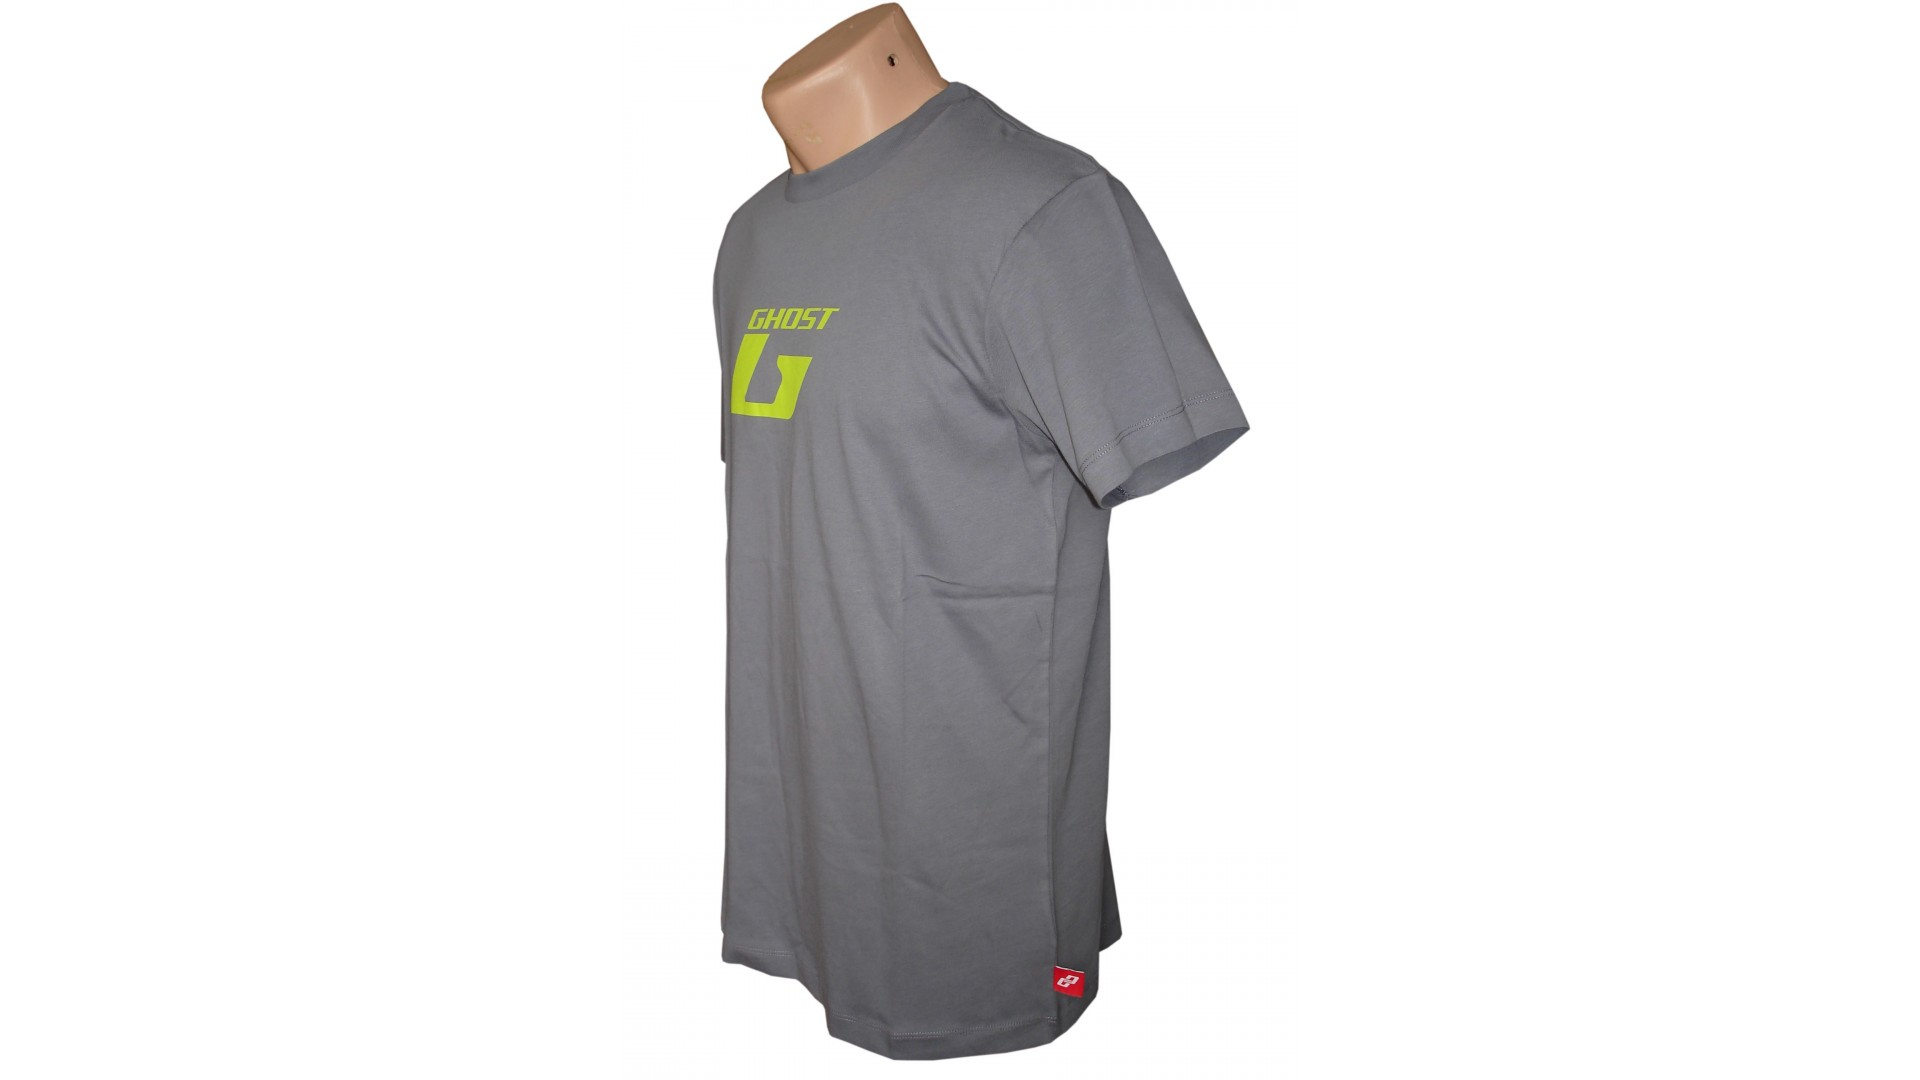 Футболка Ghost T-shirt grey год 2014 вид сбоку